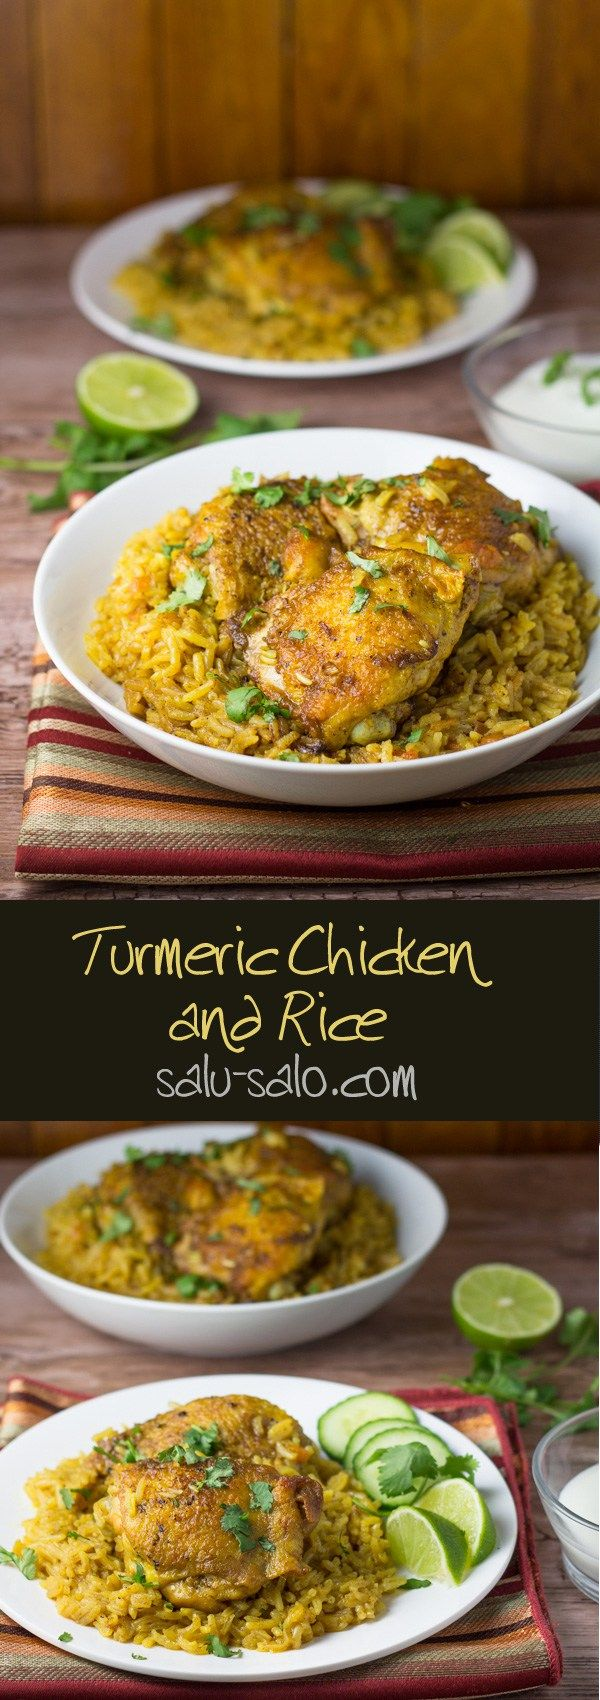 In this turmeric chicken and rice dish, the chicken pieces are browned in melted butter and then cooked on low heat with the aromatics, spices and rice.